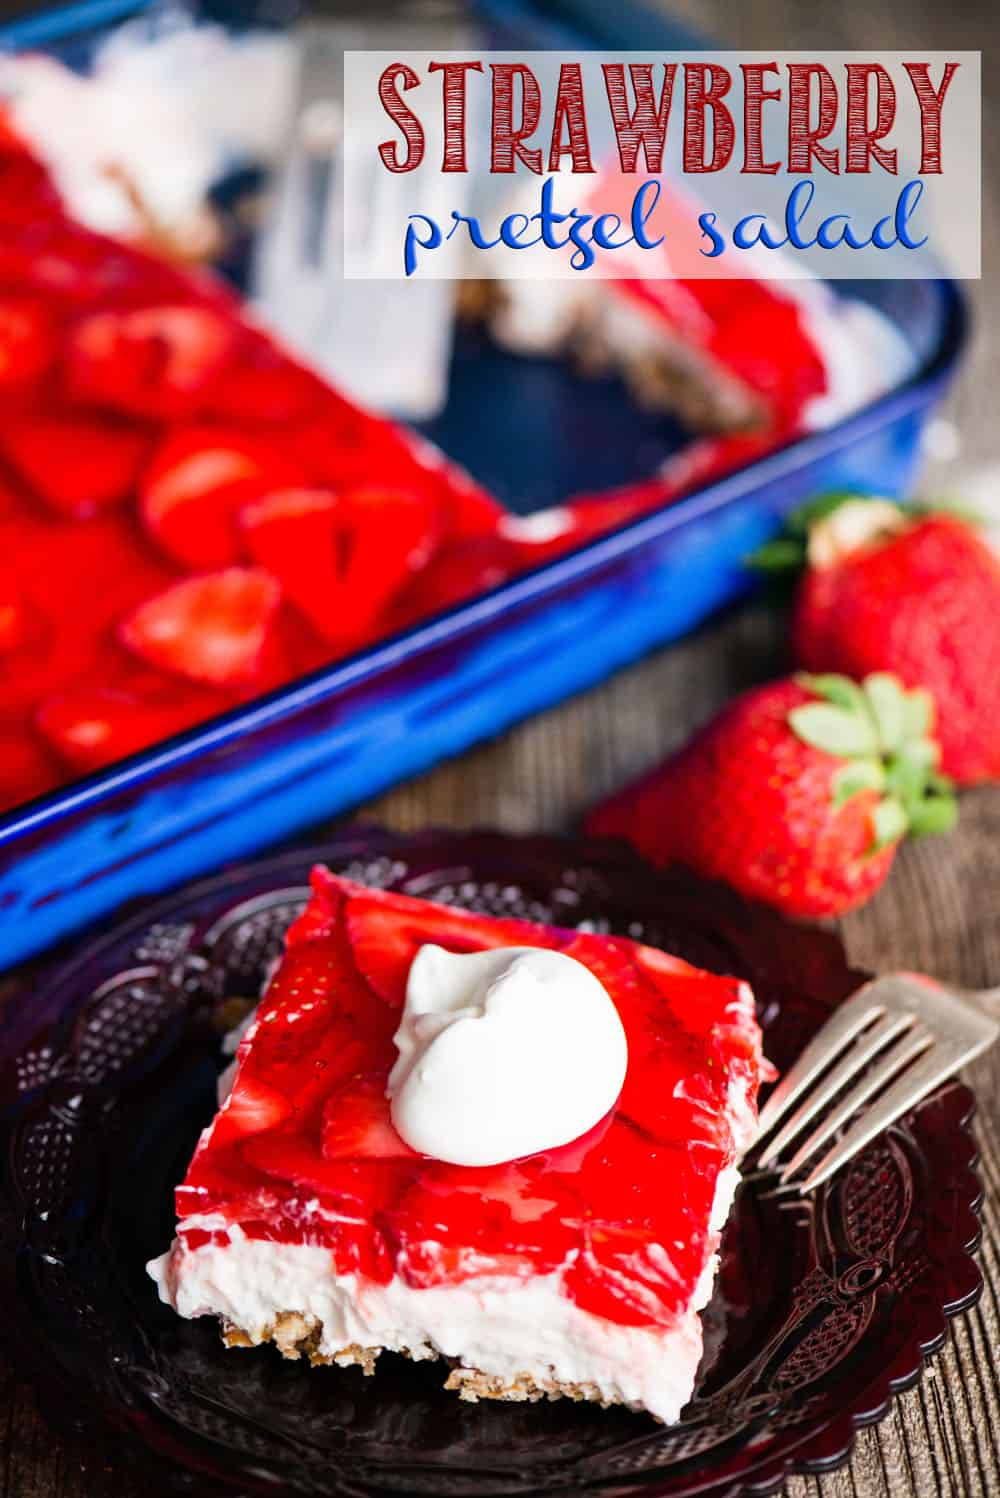 Strawberry Pretzel Dessertis the ultimate summer dessert, especially when you're looking for something sweet to take to potlucks! This tasty treat consists of a sweet pretzel crust, topped by a creamy layer, and finished off with a layer of fresh strawberries set in strawberry jello. #strawberry #strawberrypretzelsalad #strawberrypretzeldessert #strawberrypretzel #jello #dessert #potluck #strawberrypretzeljello #strawberrypretzelbars